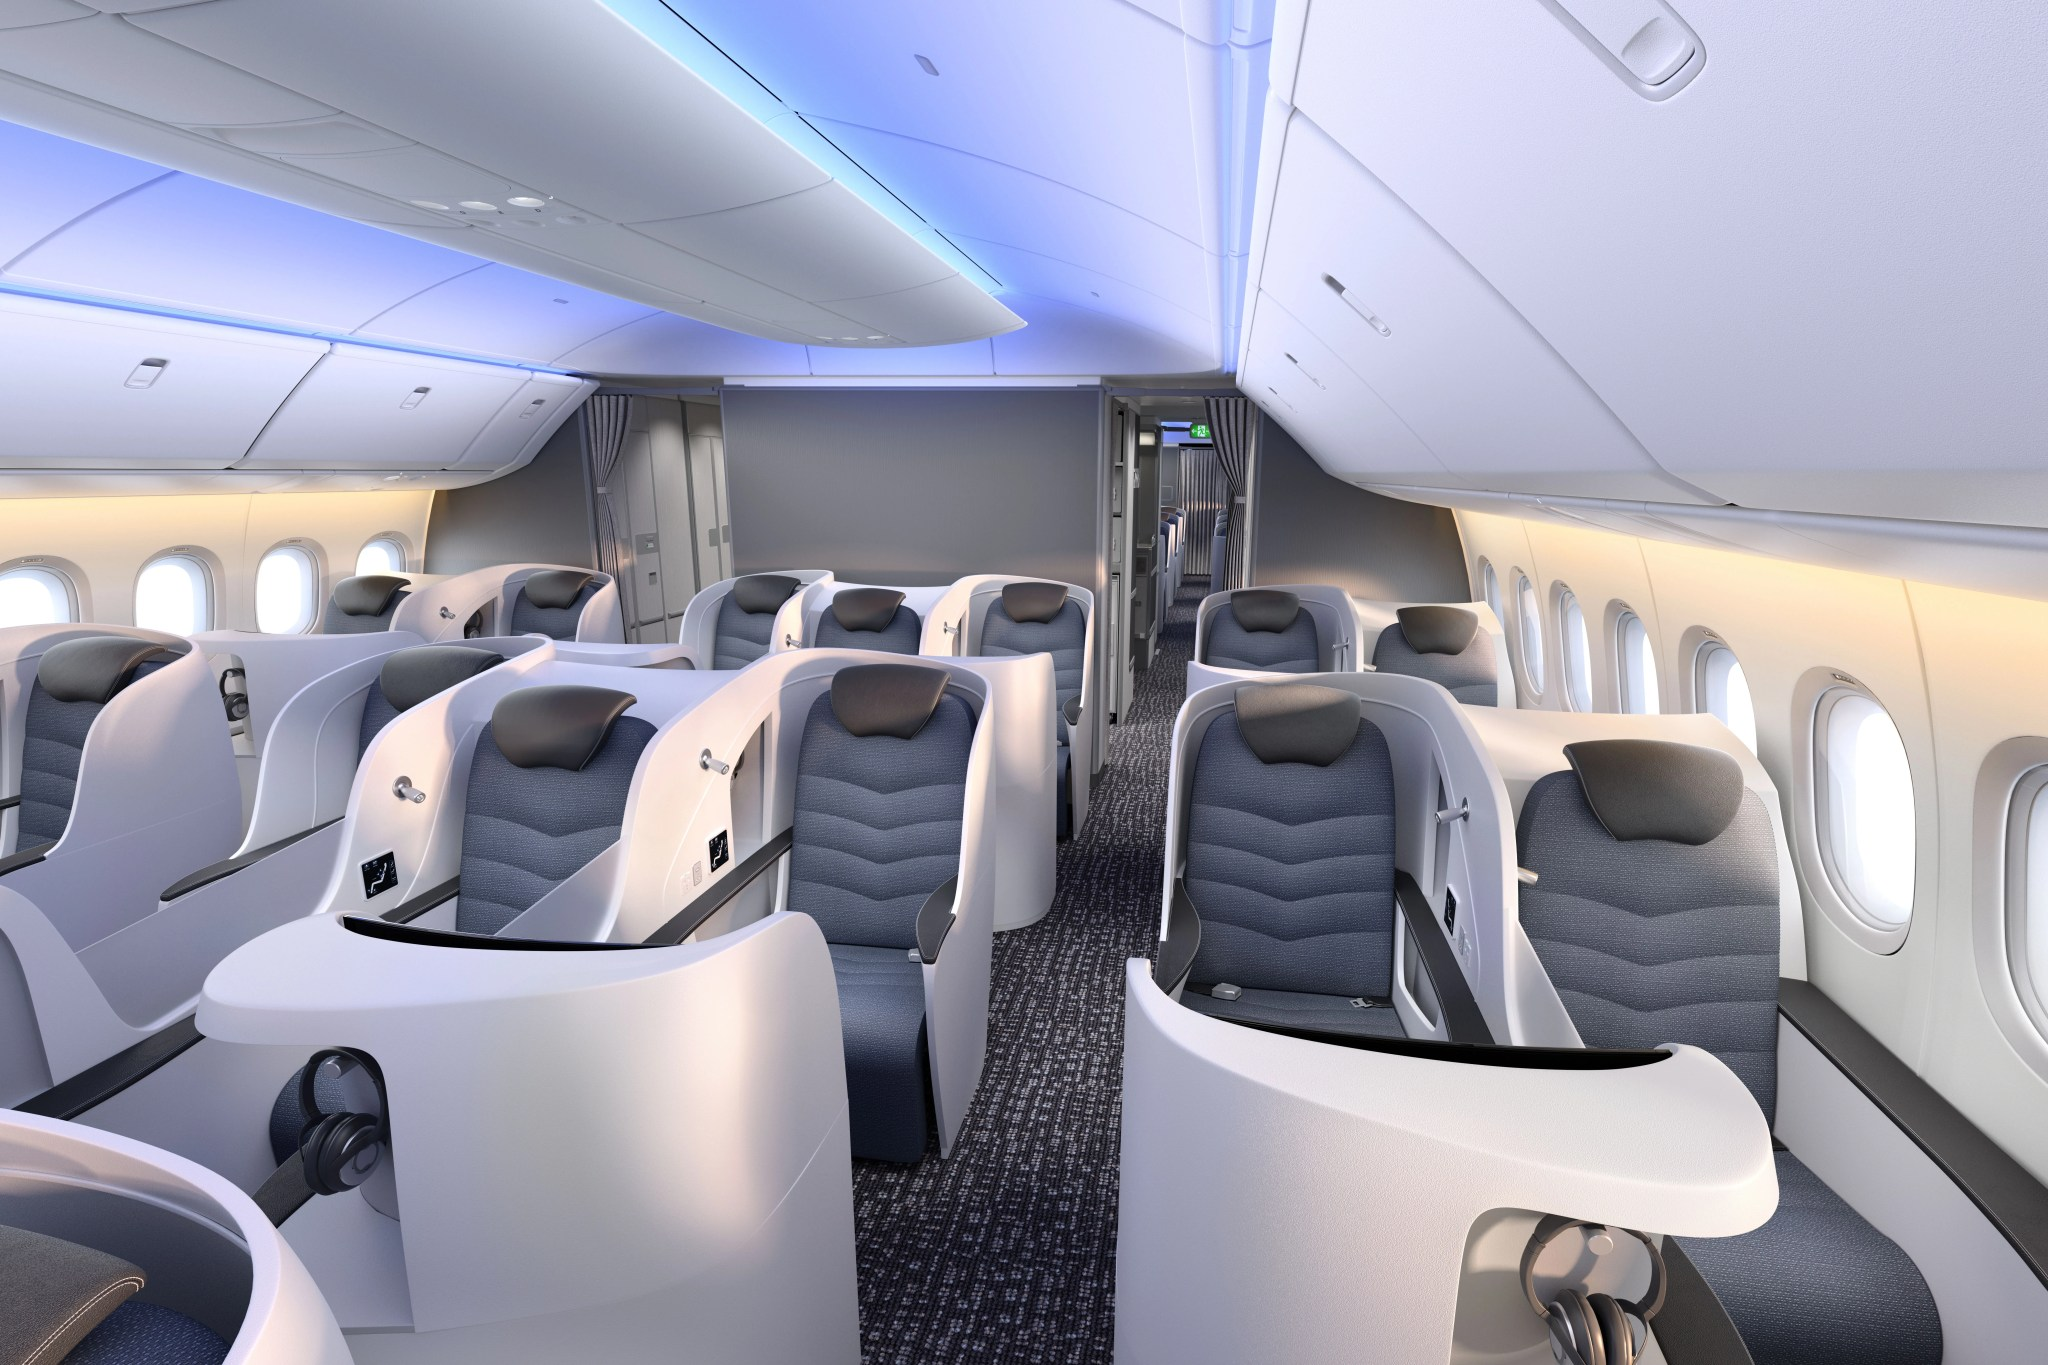 Boeing 777X business class cabin. Image: Boeing